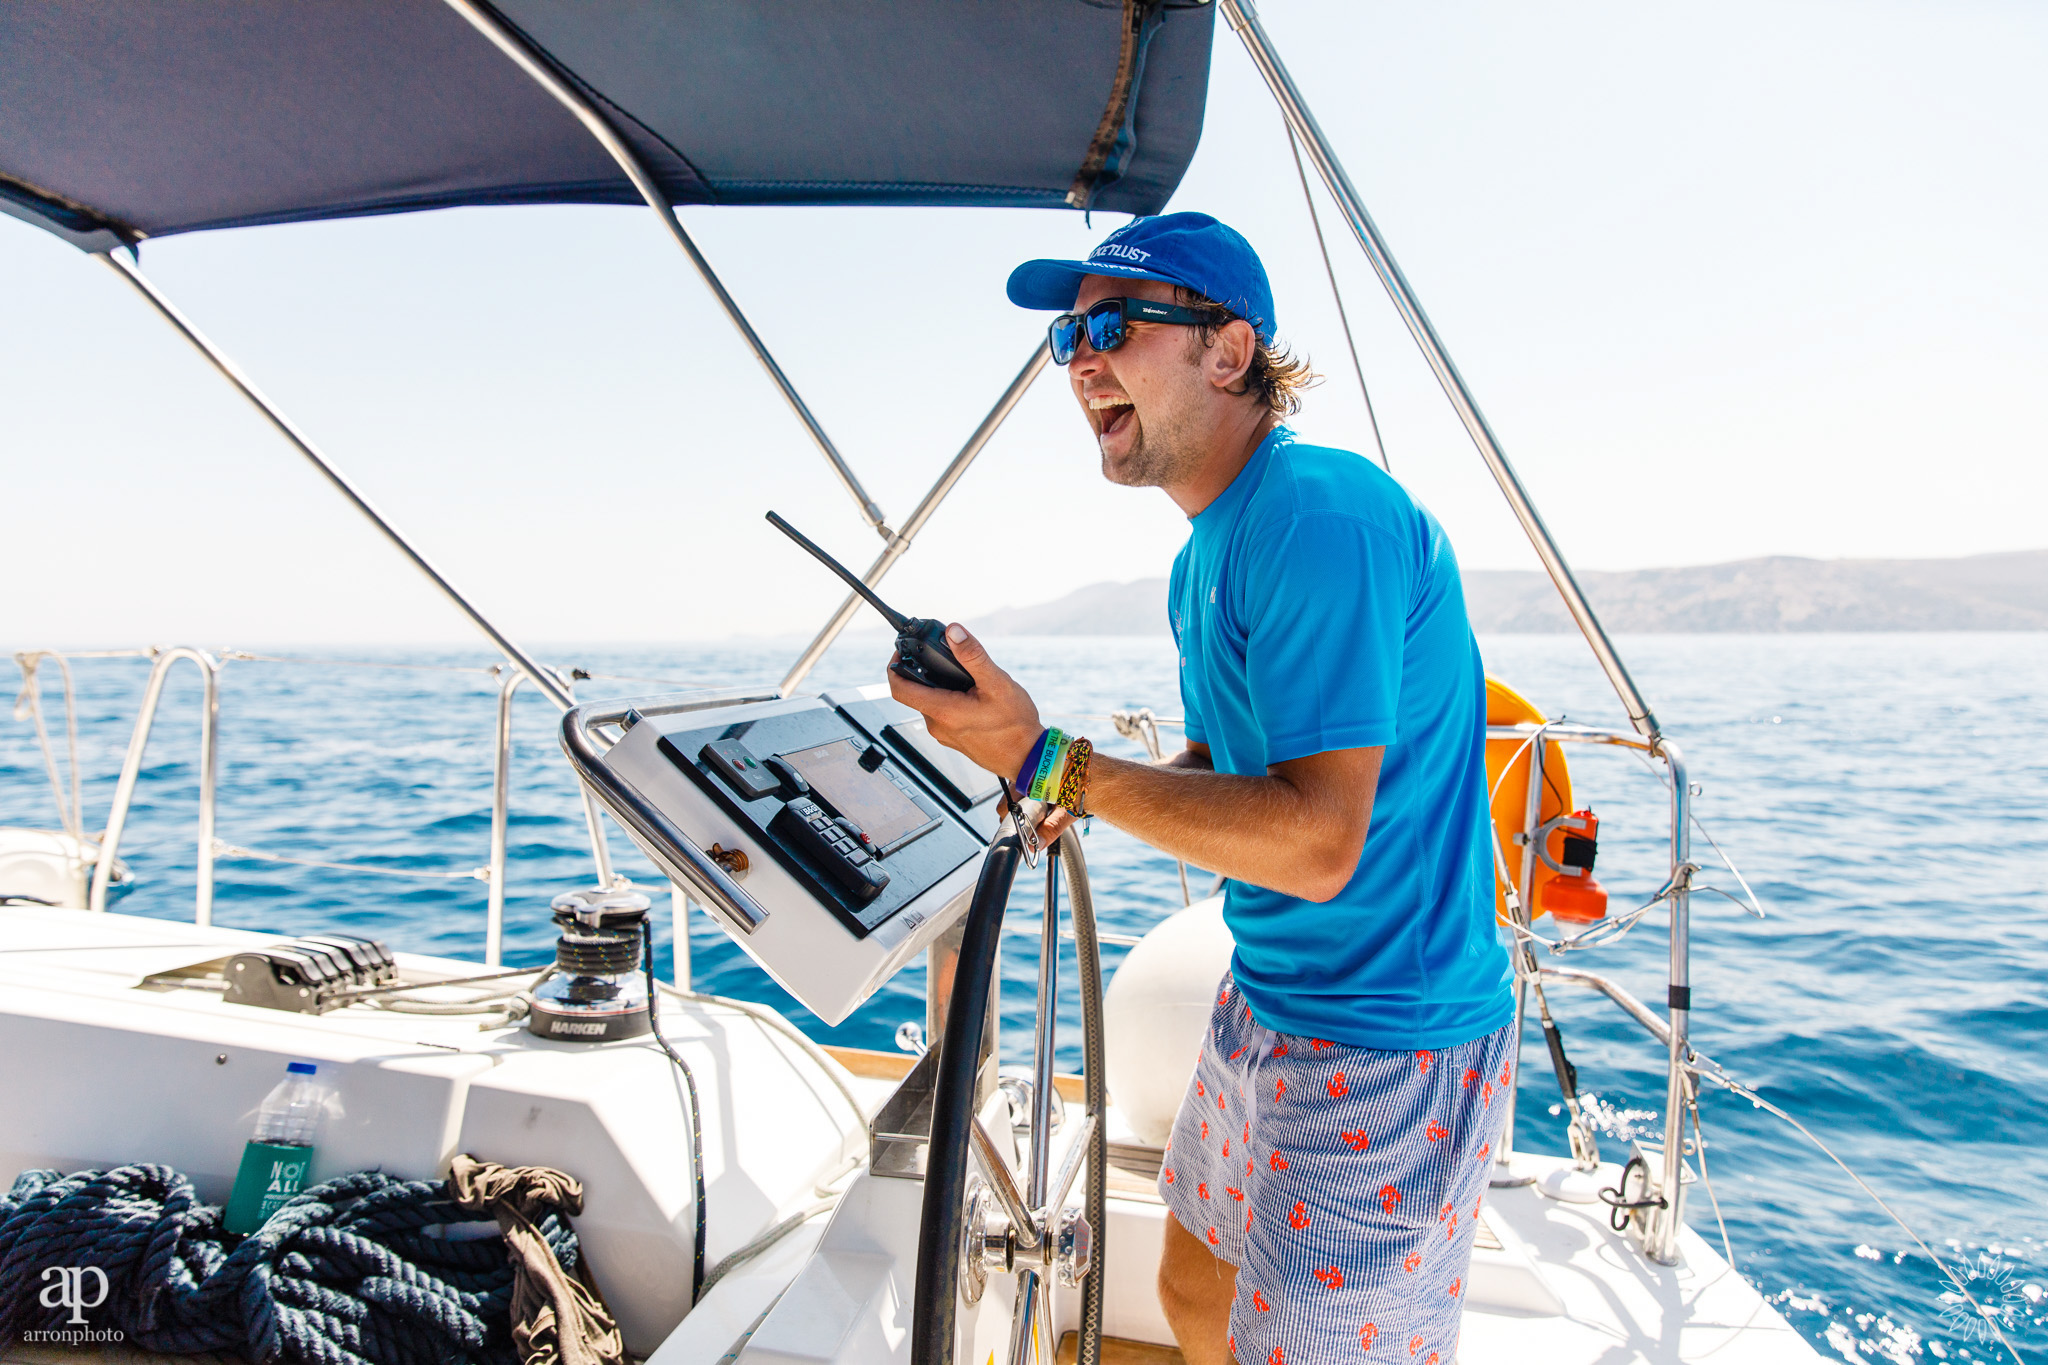 Skipper Manager 'Maverick' smiling for once - The Mykonos Route